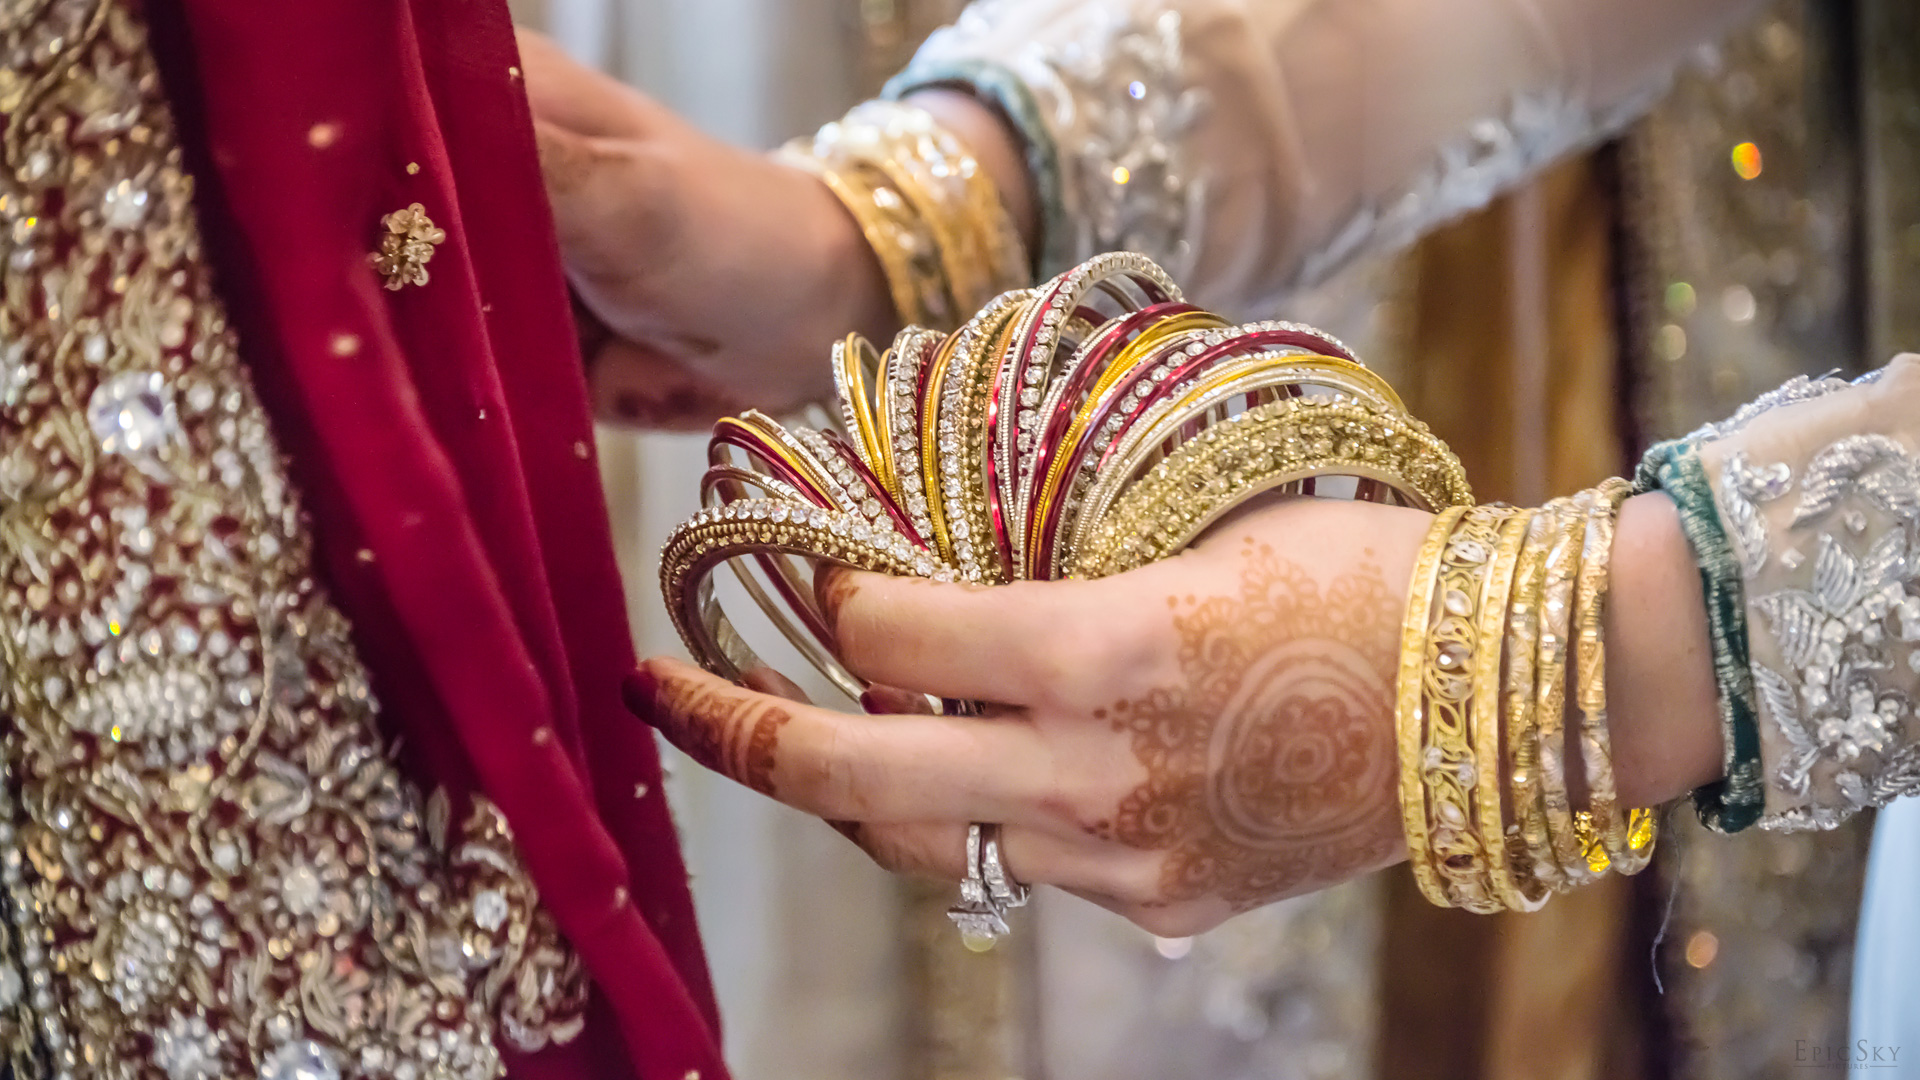 epic_sky_pictures_bridal_bangles_photography_accessories_wedding_weddingday_details_bracelets_shiny_candid_wedding_muslim_bride_shirlywoo